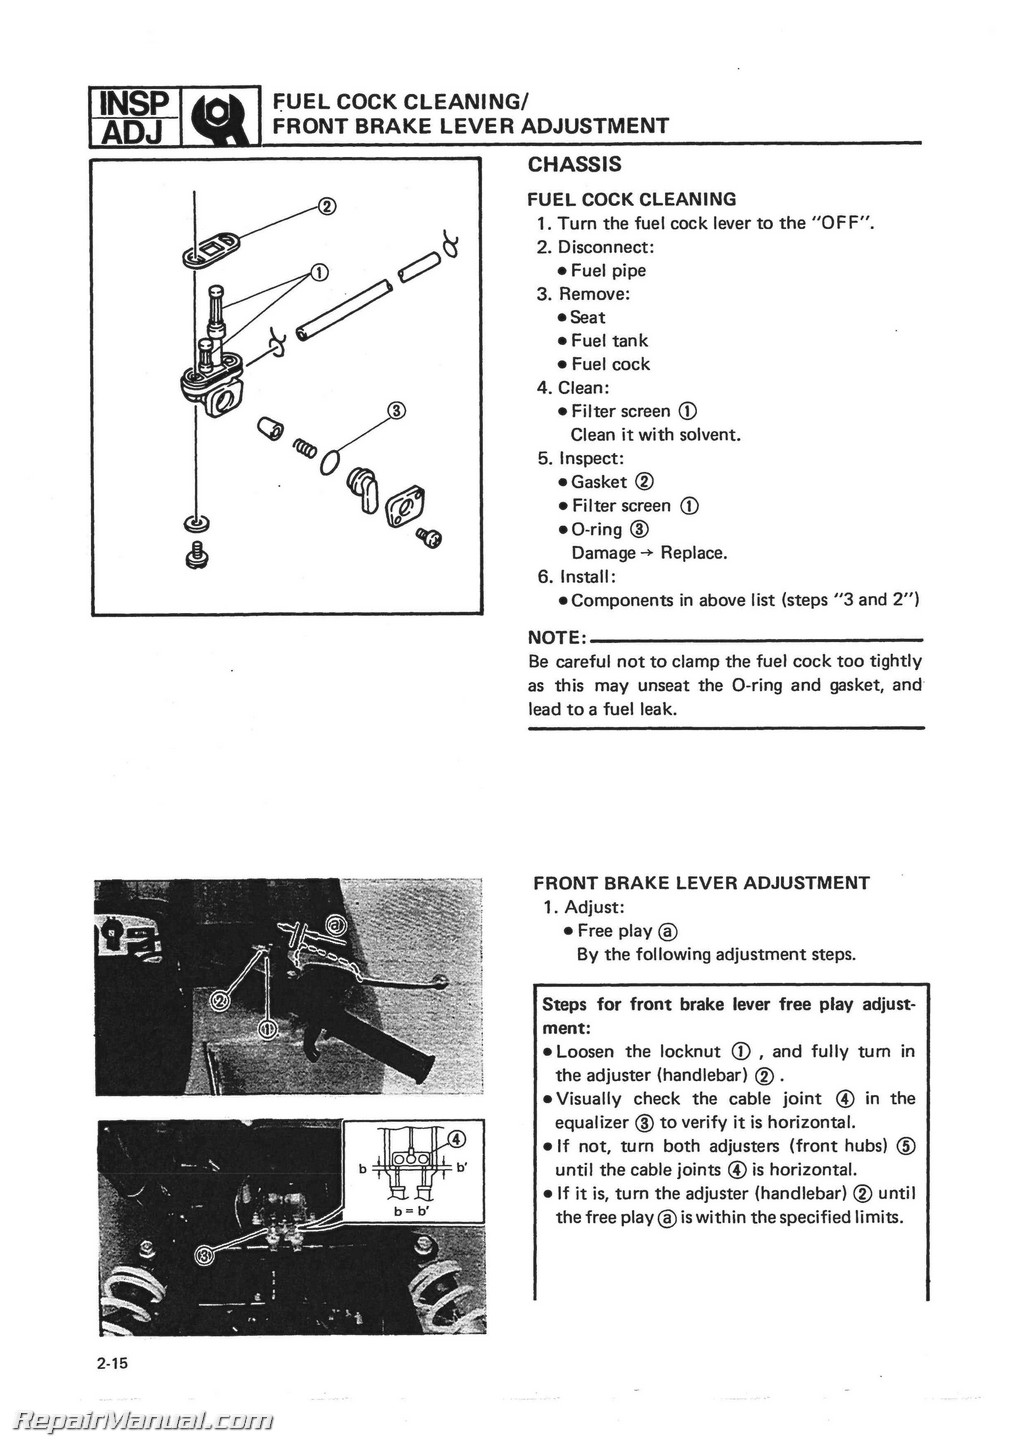 1986-1988-Yamaha-YFM225-Moto-4-Service-Manual_Page_2 Yfm Wiring Diagram on sincgars radio configurations diagrams, engine diagrams, friendship bracelet diagrams, lighting diagrams, internet of things diagrams, hvac diagrams, electrical diagrams, gmc fuse box diagrams, smart car diagrams, motor diagrams, troubleshooting diagrams, switch diagrams, honda motorcycle repair diagrams, battery diagrams, electronic circuit diagrams, pinout diagrams, series and parallel circuits diagrams, led circuit diagrams, transformer diagrams,